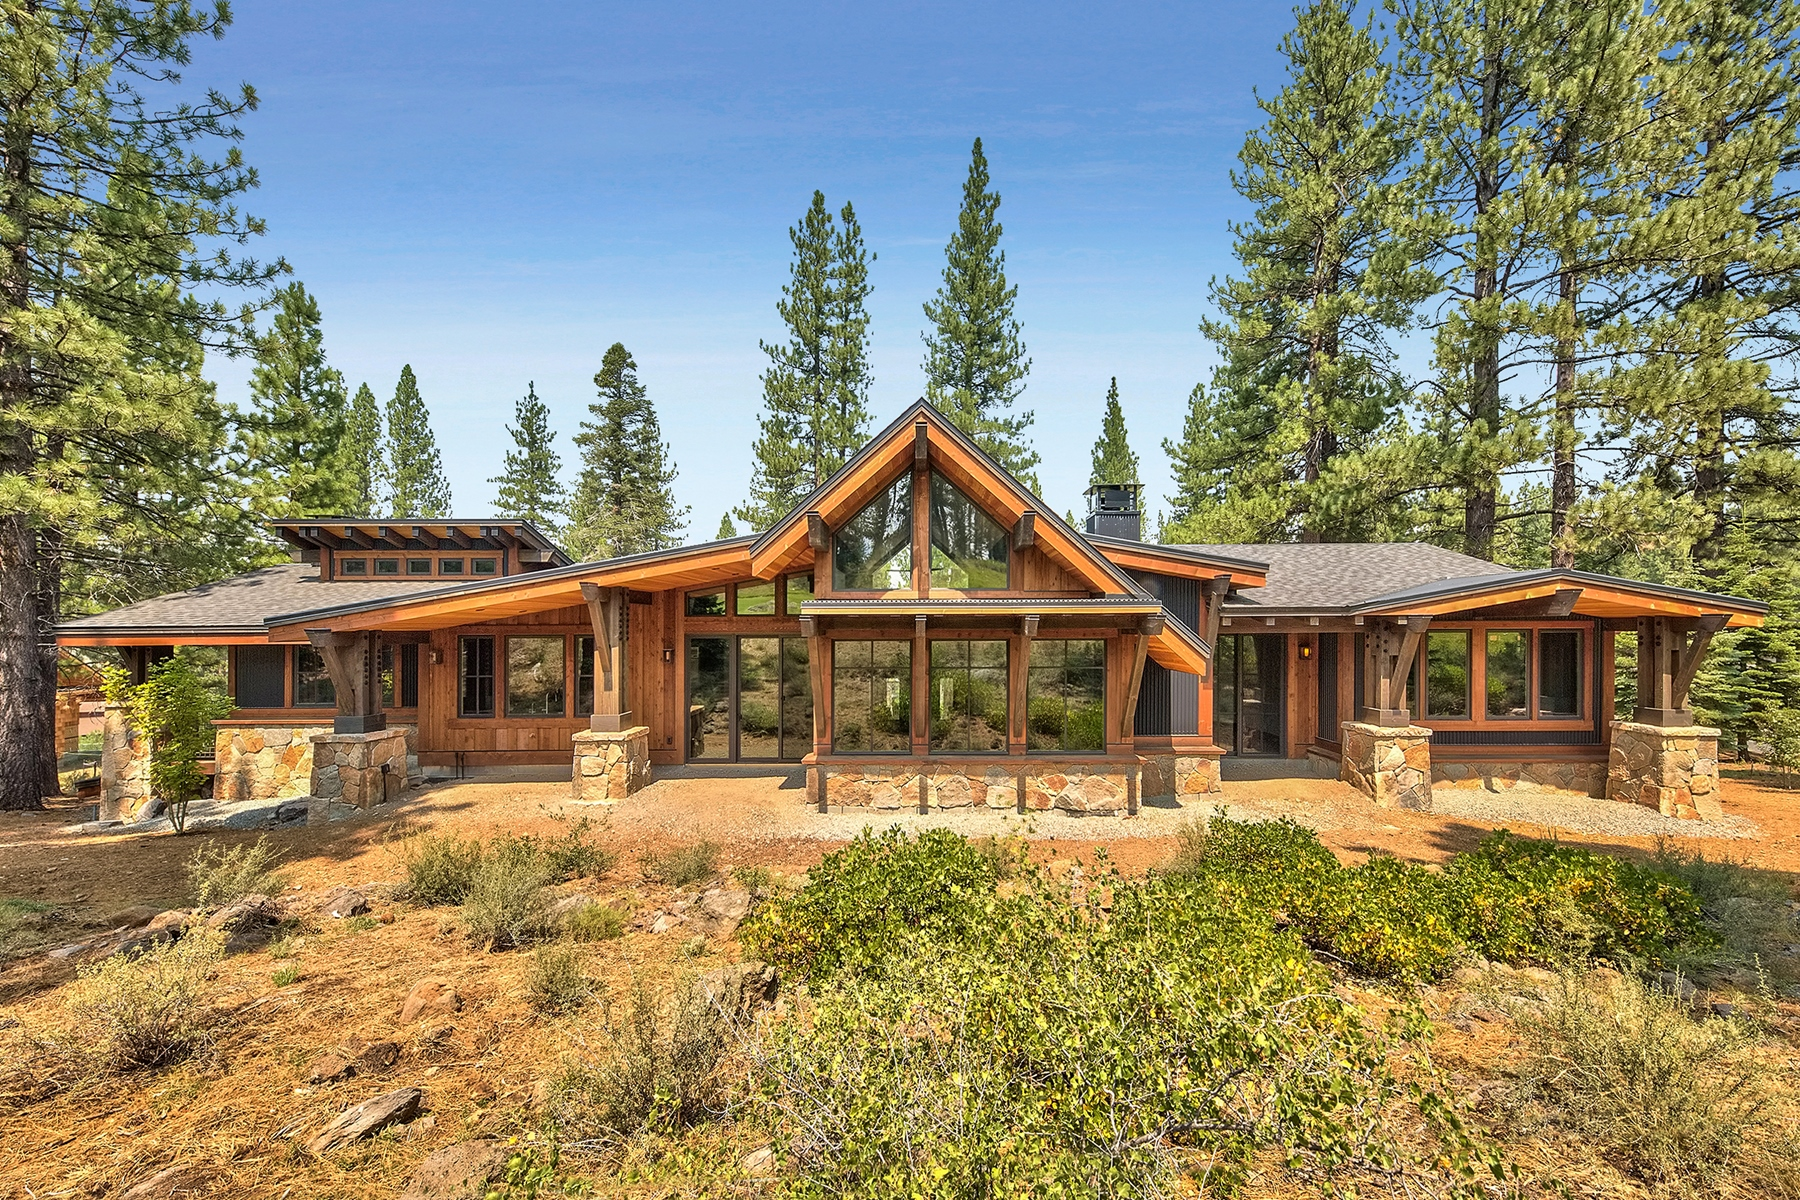 Single Family Home for Active at 13228 Snowshoe Thompson Circle, Truckee, California 96161 13228 Snowshoe Thompson Circle Truckee, California 96161 United States